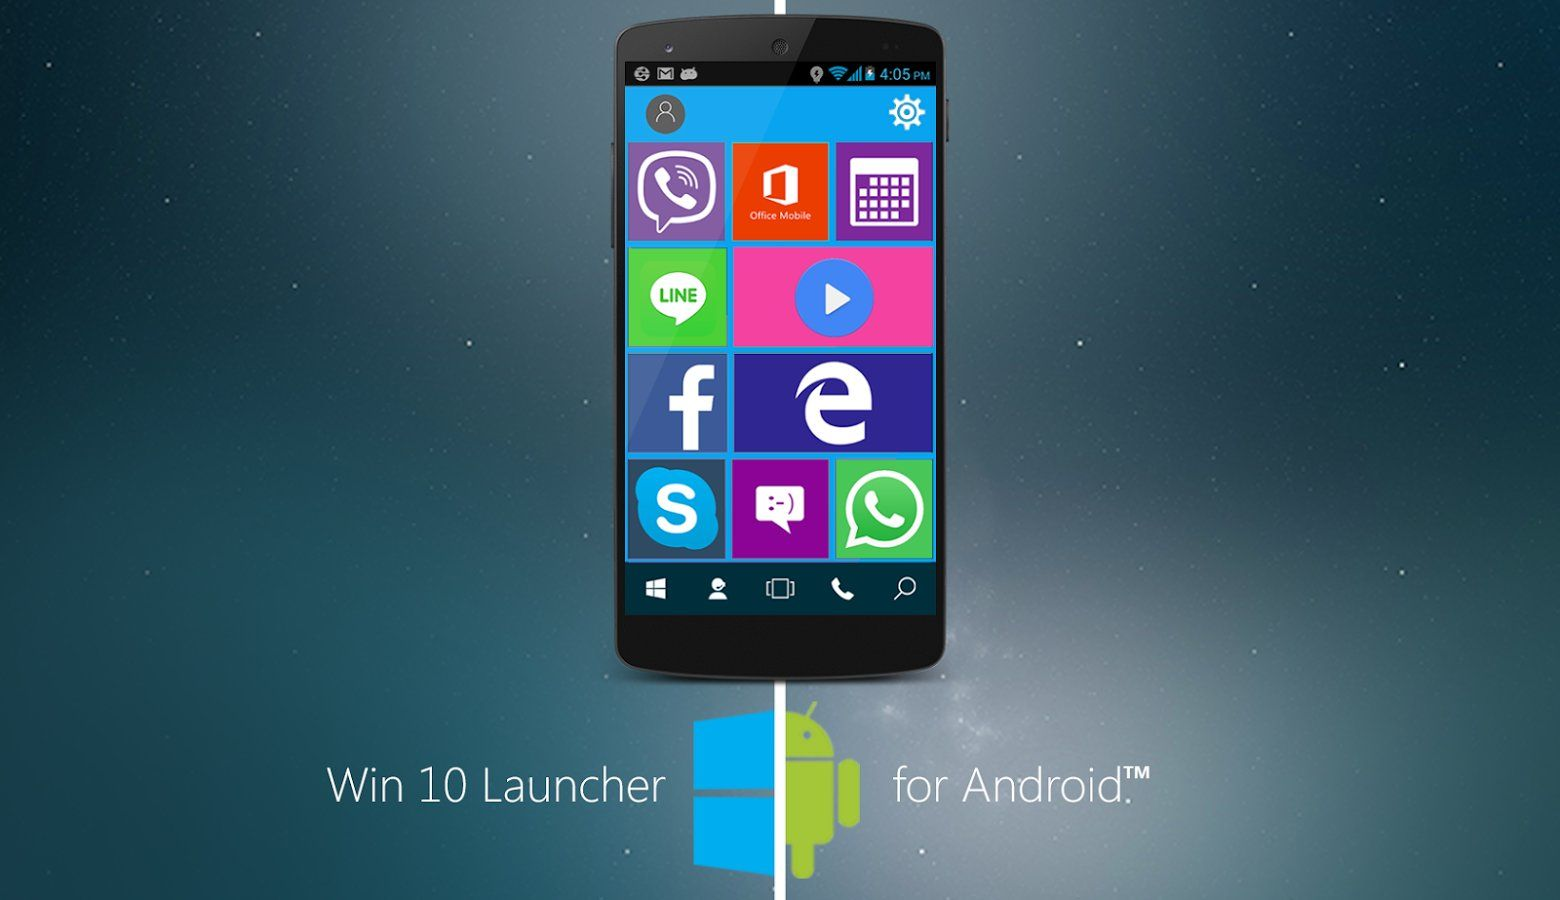 Download The Windows 10 Launcher APK For Android